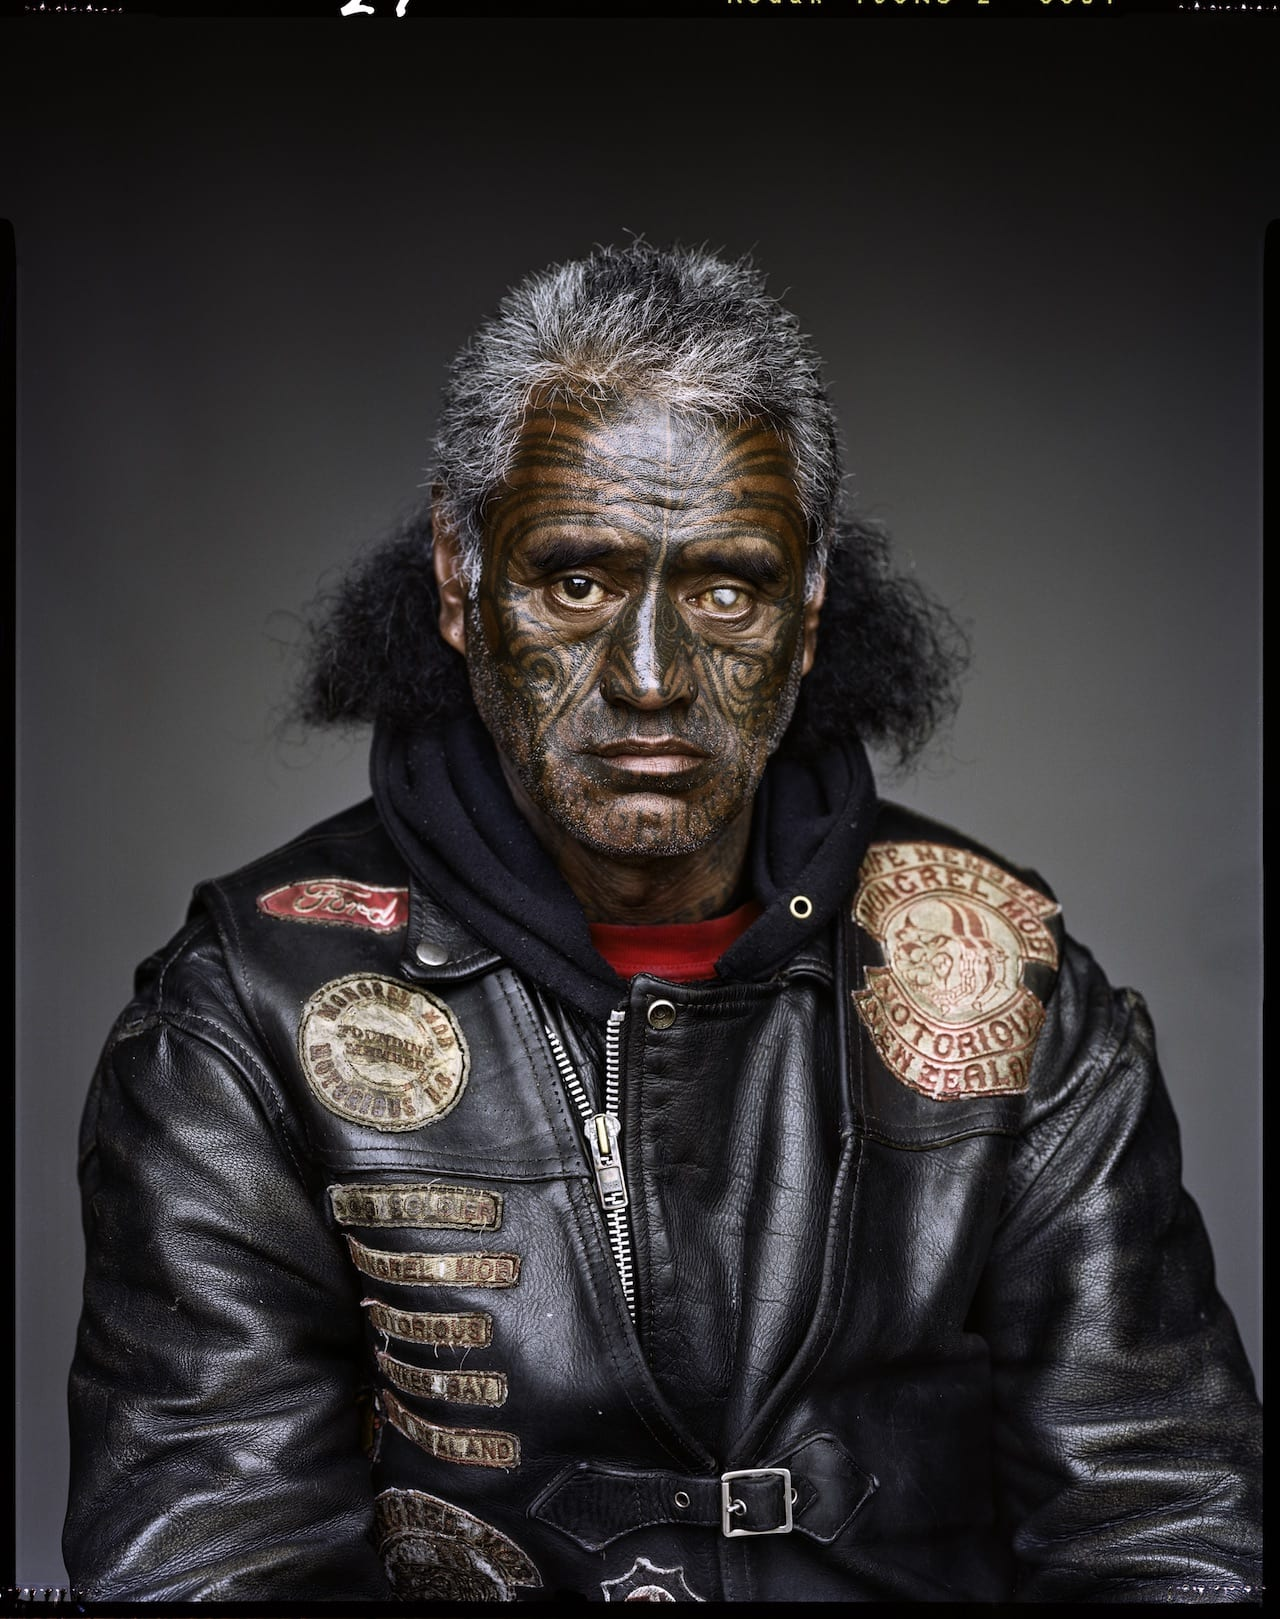 15d3722ee New Zealand's Mongrel Mob gang, photographed by Jono Rotman ...